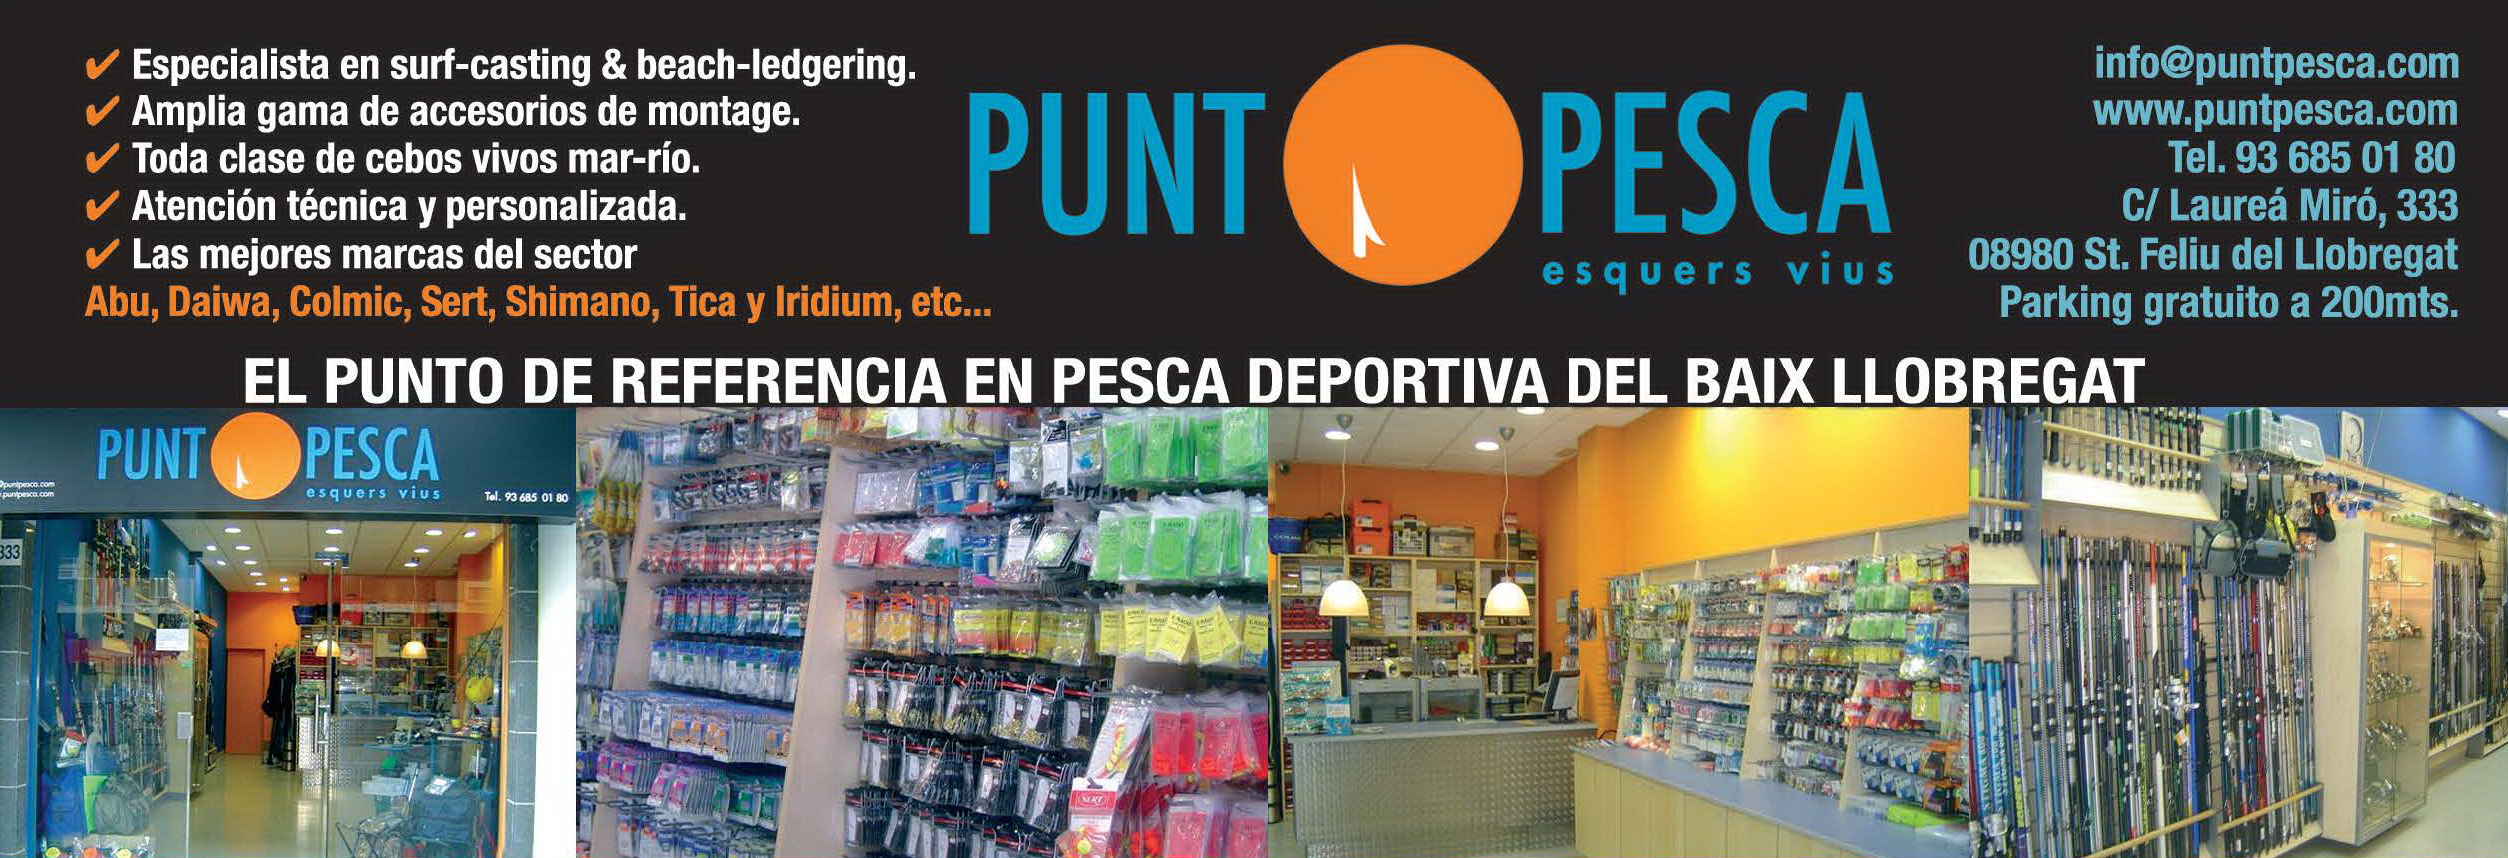 ZX PUNT PESCA